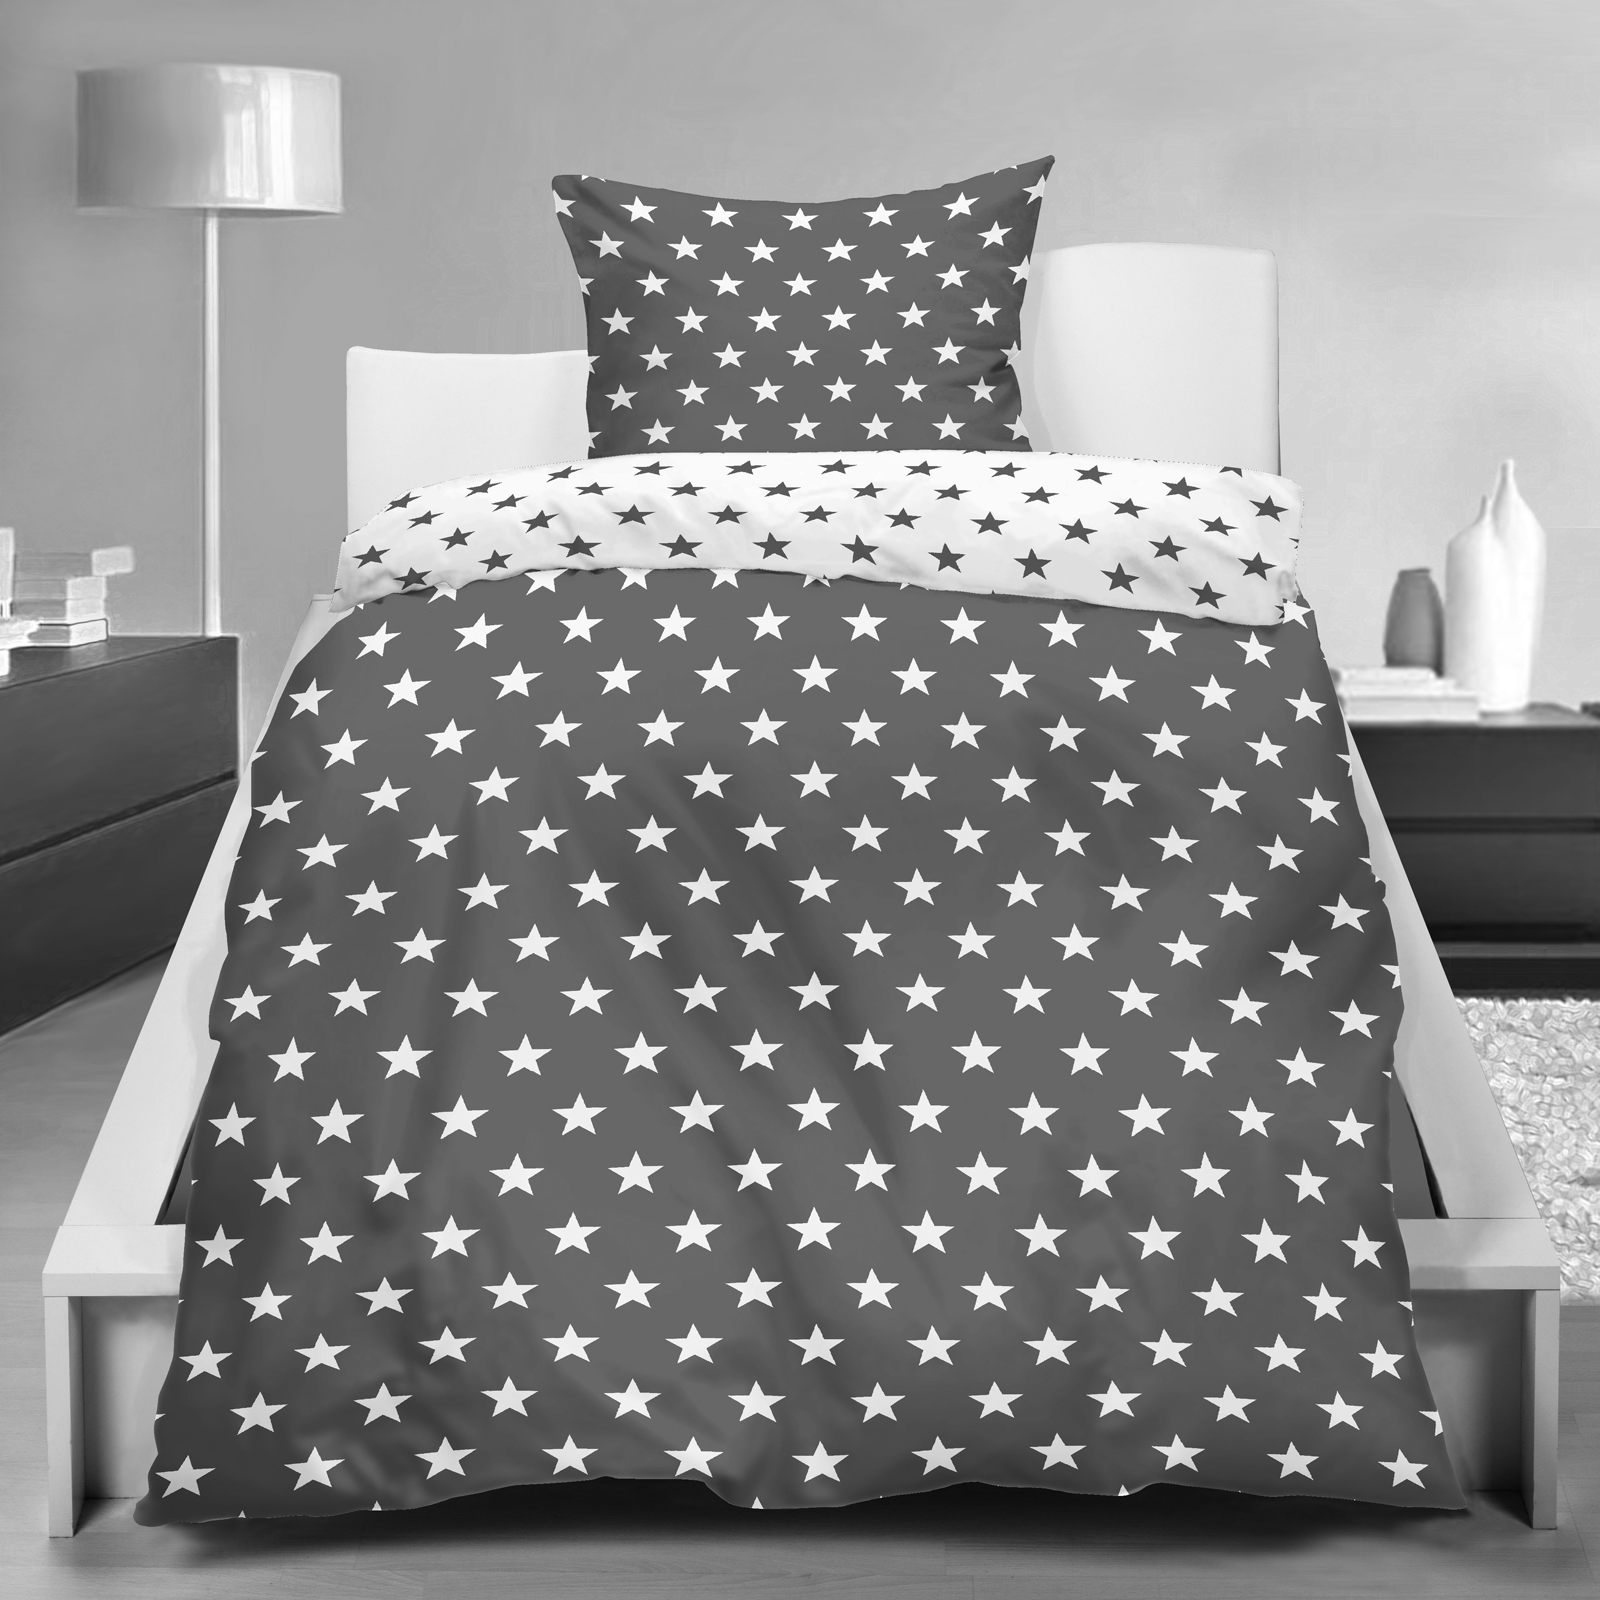 wende bettw sche stars sterne 135x200 80x80 microfaser rei verschluss ebay. Black Bedroom Furniture Sets. Home Design Ideas